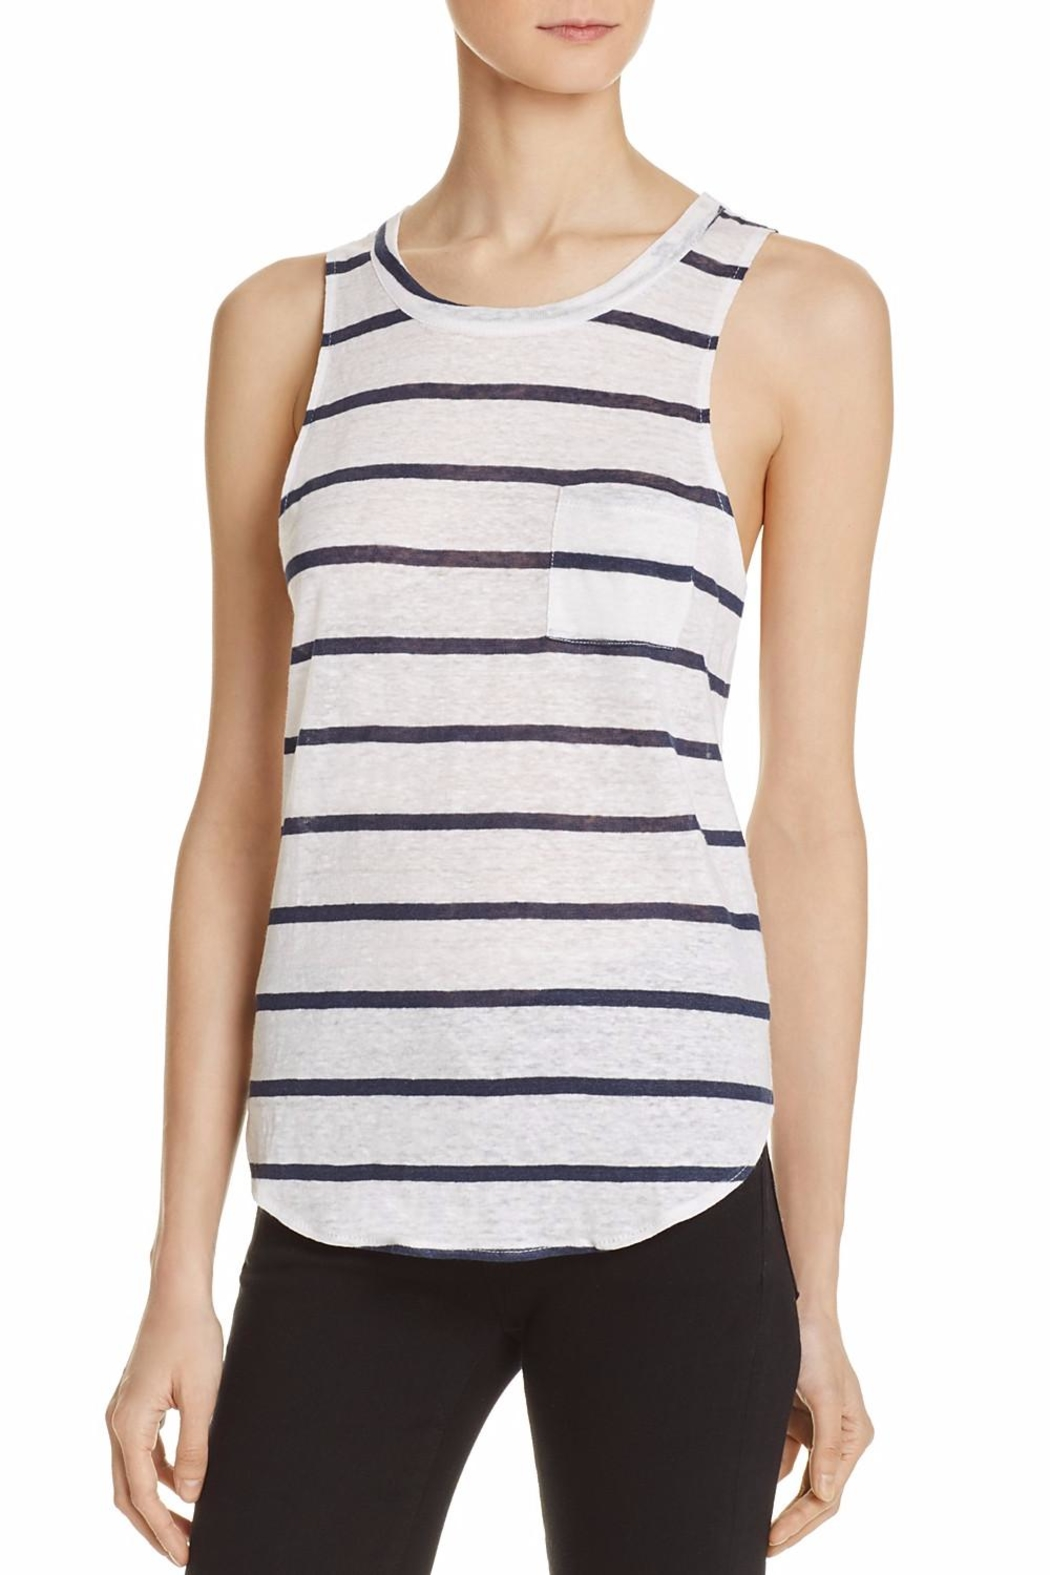 Chaser Stripe Pocket Tank - Main Image